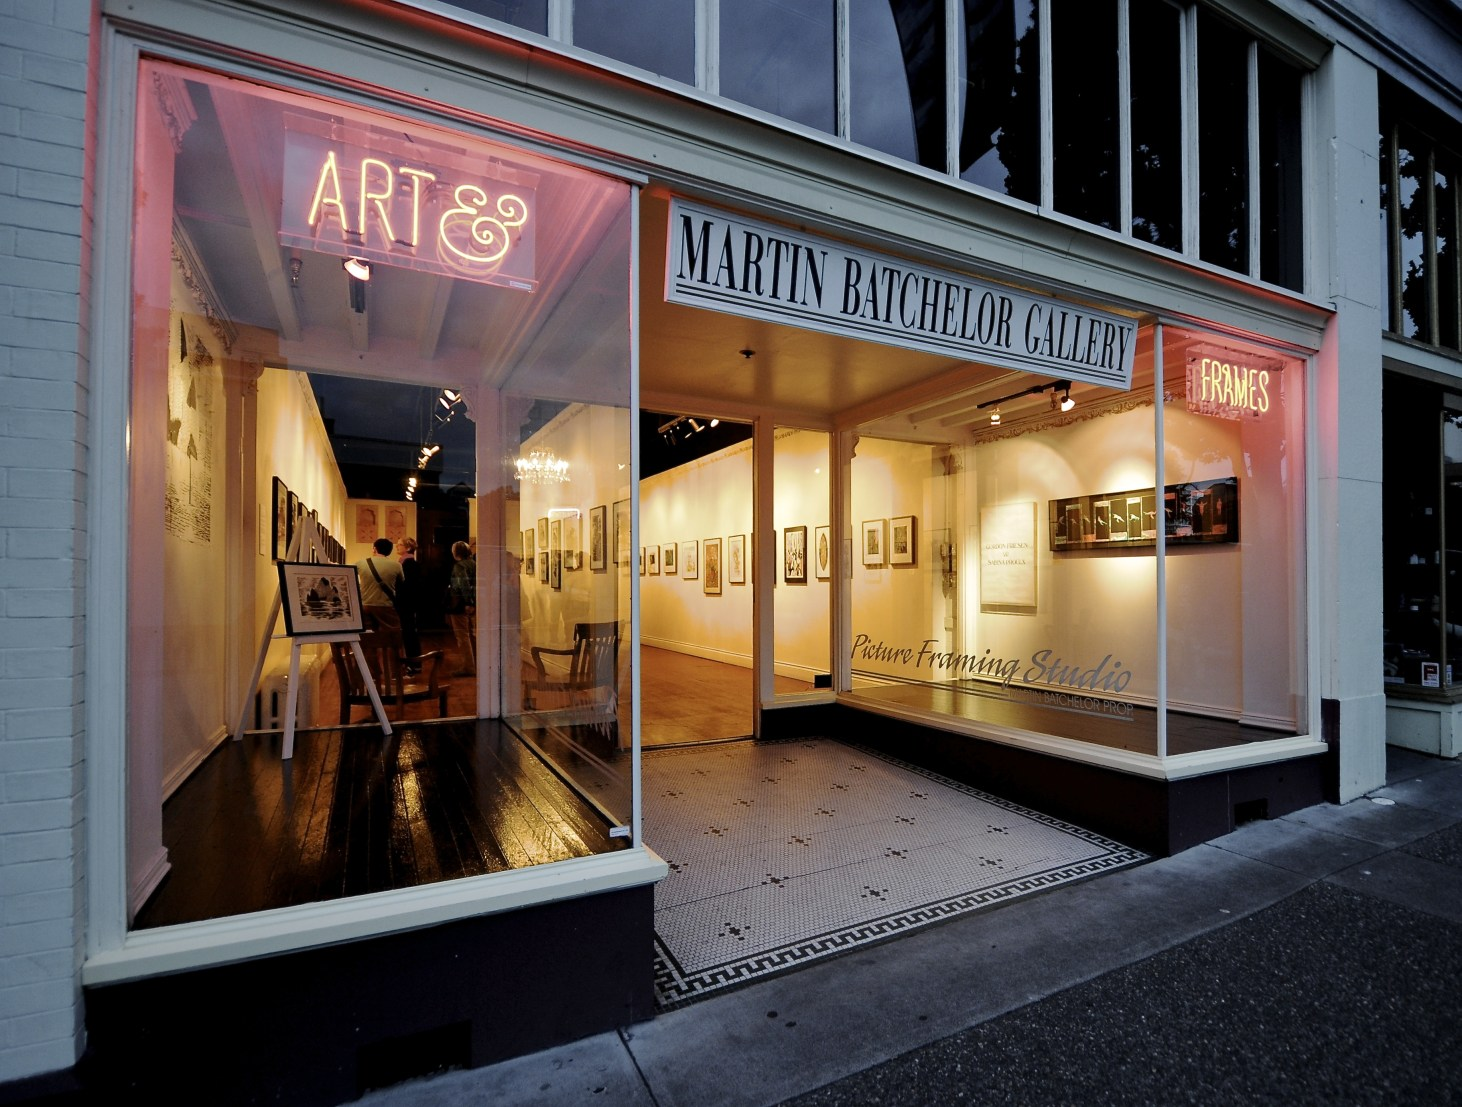 Martin Batchelor Gallery